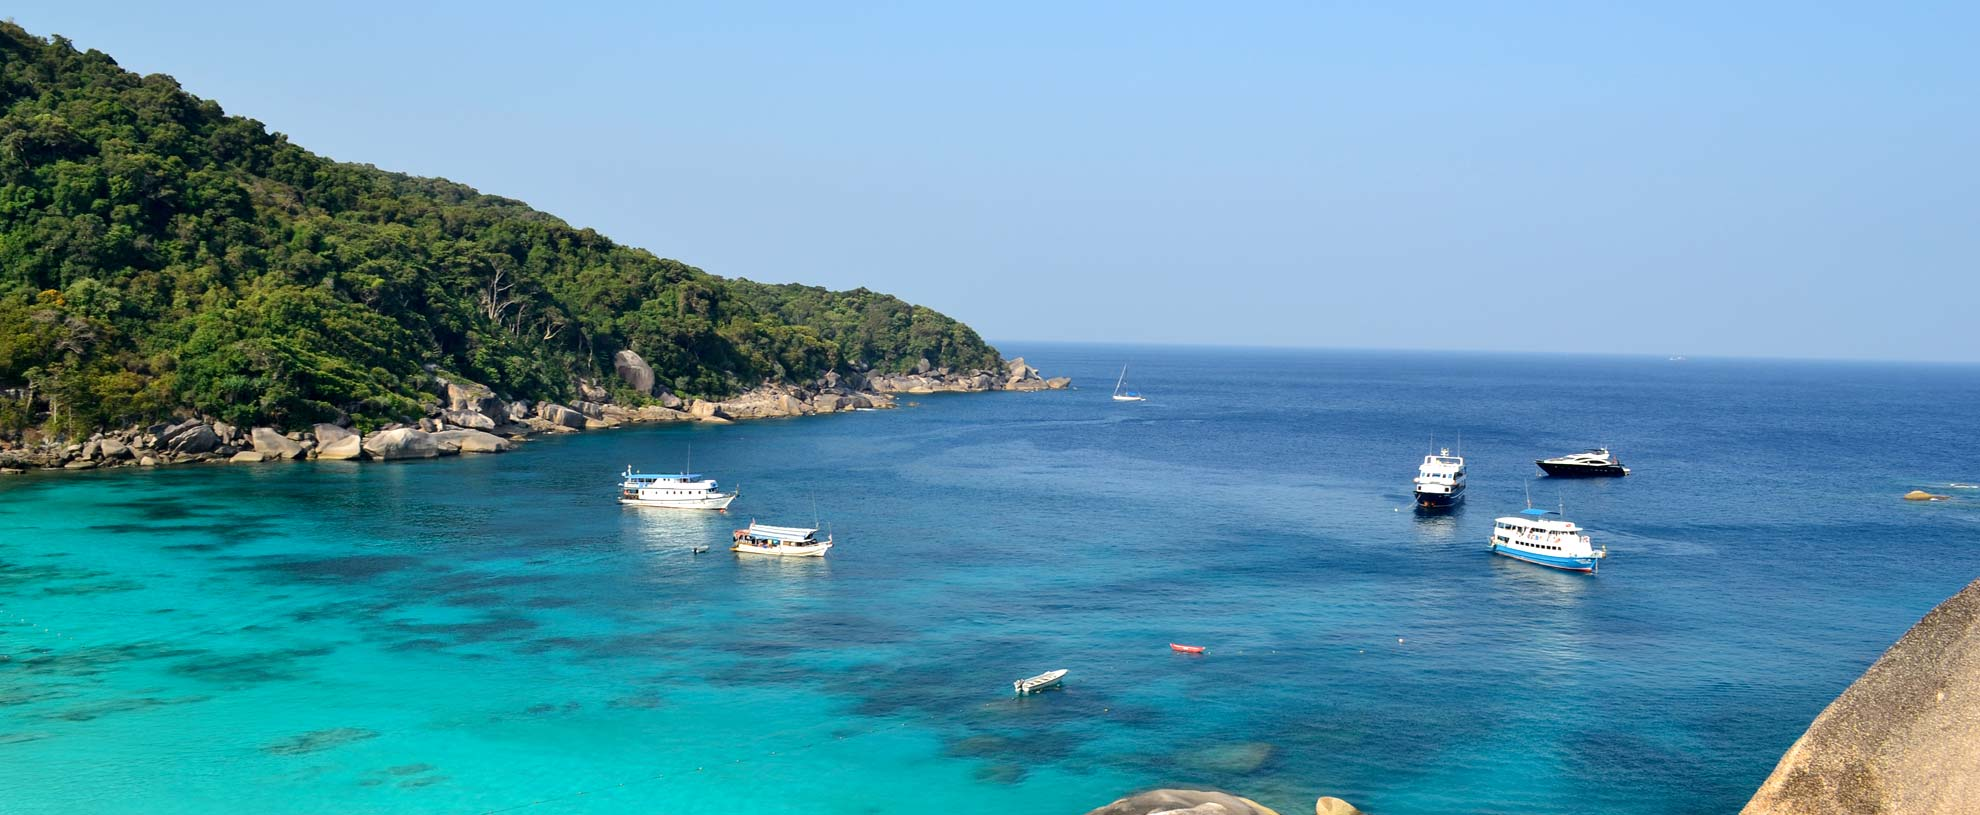 Similan Island liveaboards anchored in Donald Duck Bay